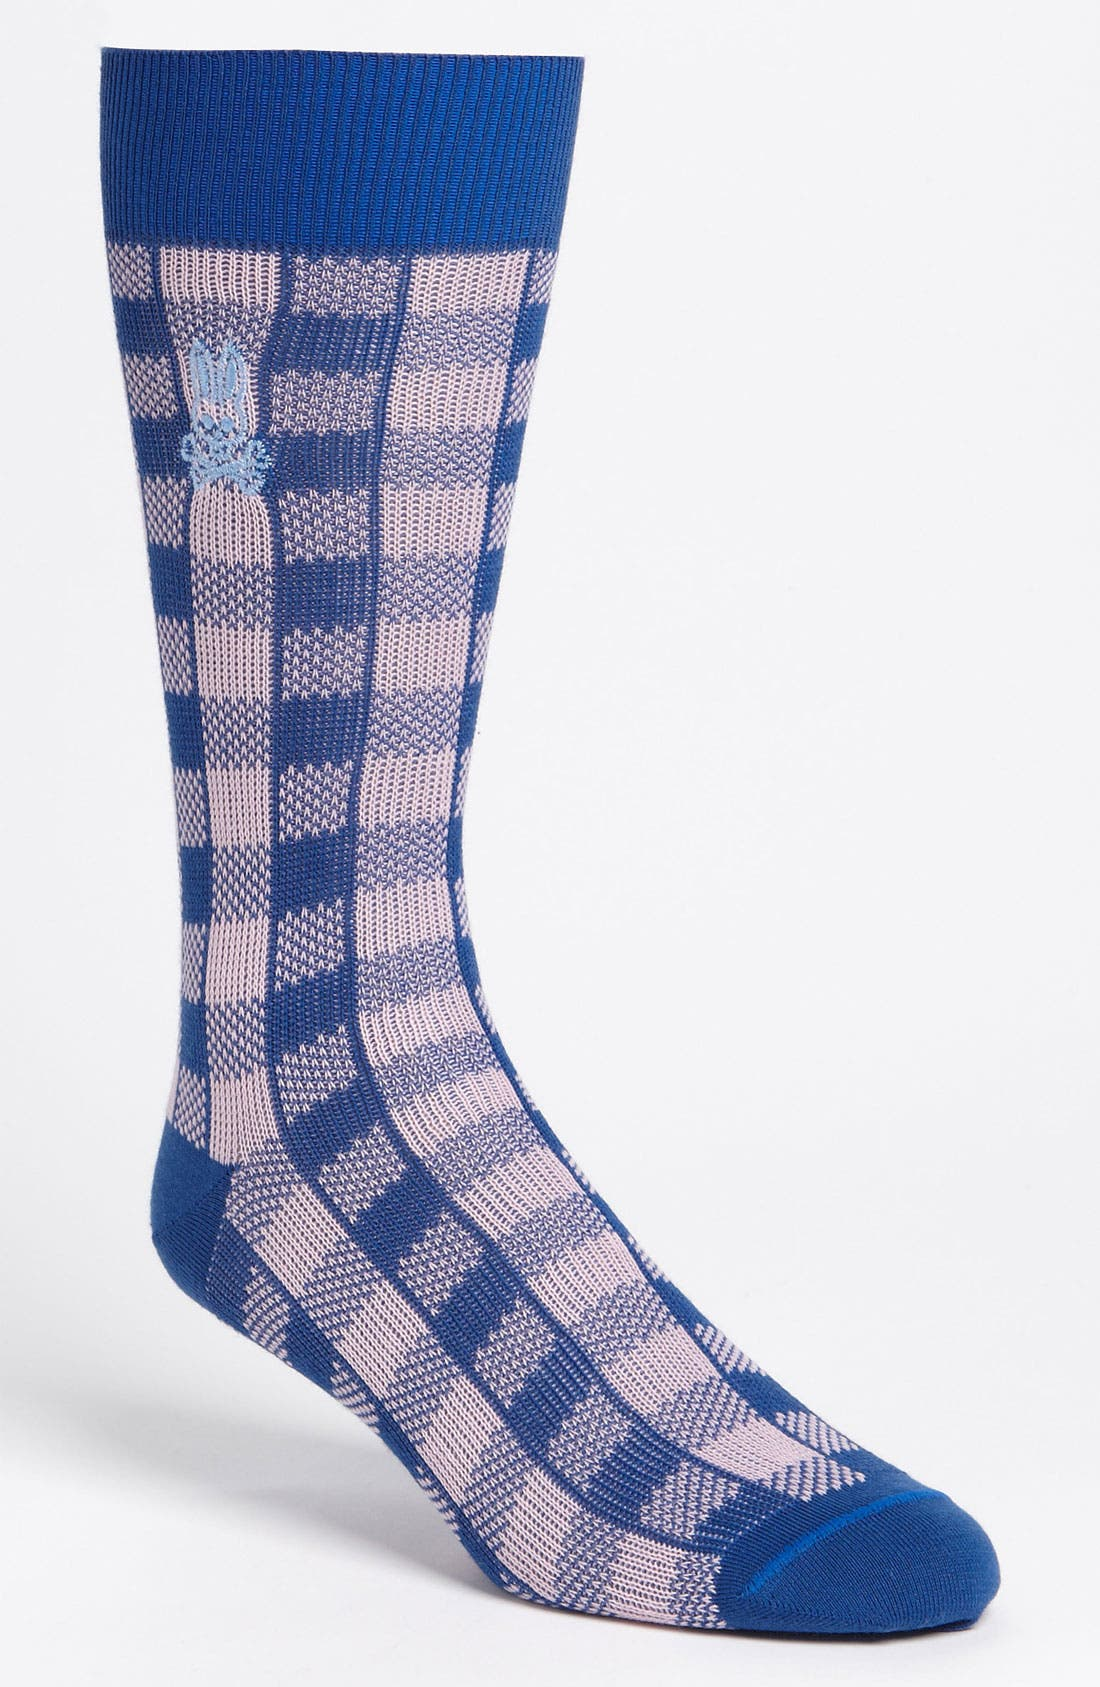 Alternate Image 1 Selected - Psycho Bunny 'Golf Check' Socks